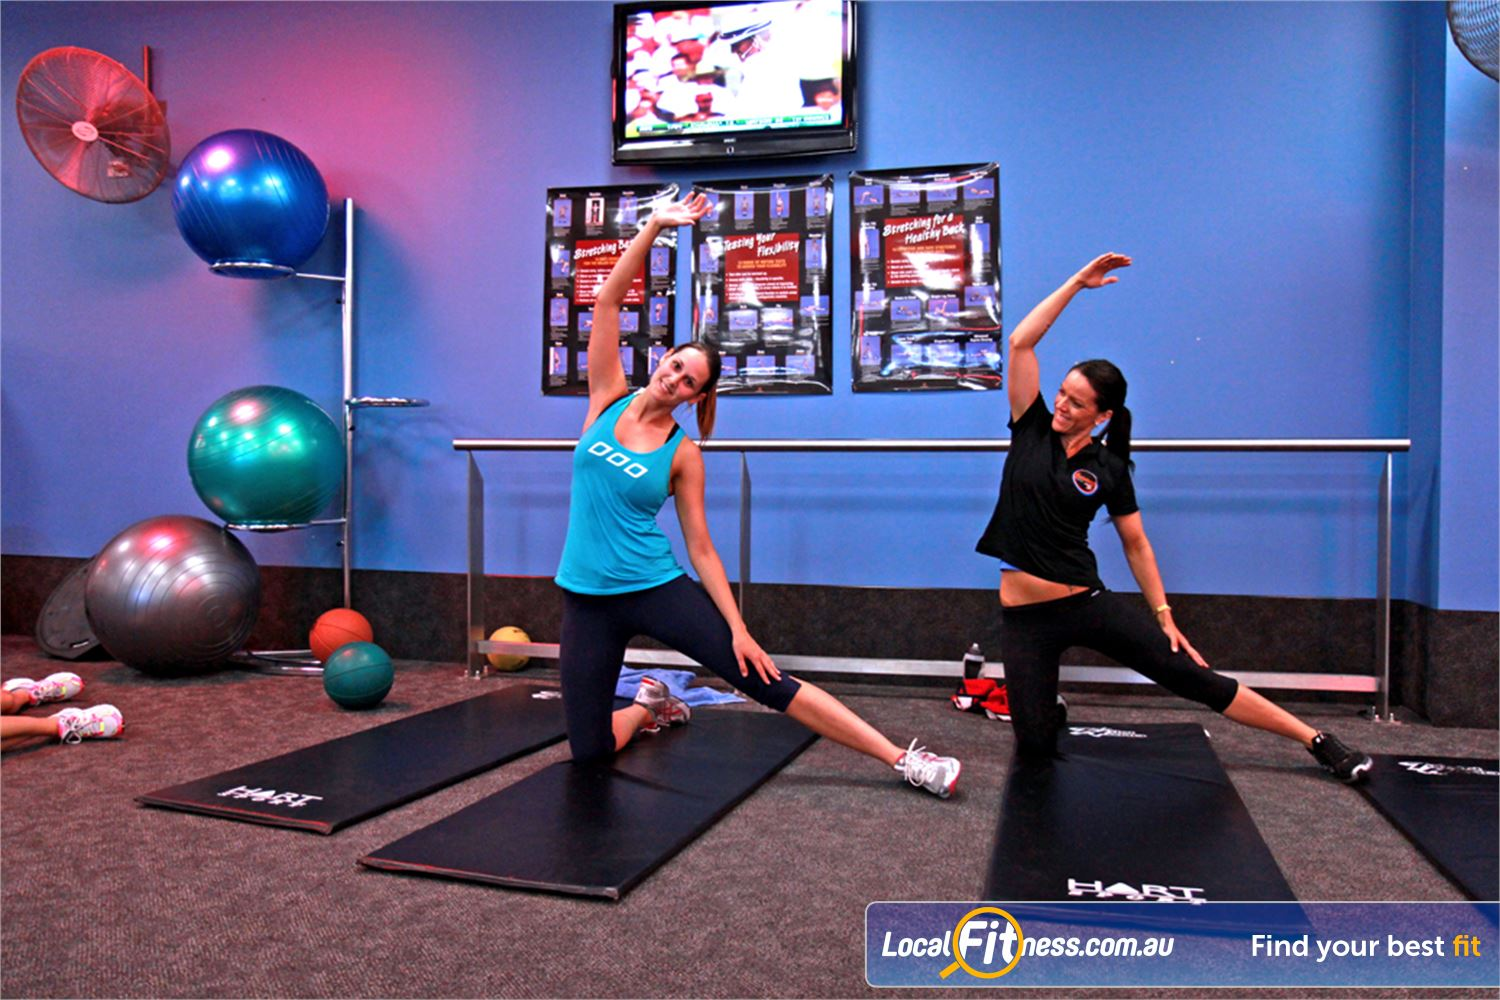 Goodlife Health Clubs Near Hawthorne Highly experienced Morningside personal trainers will motivate and kick-start your training.